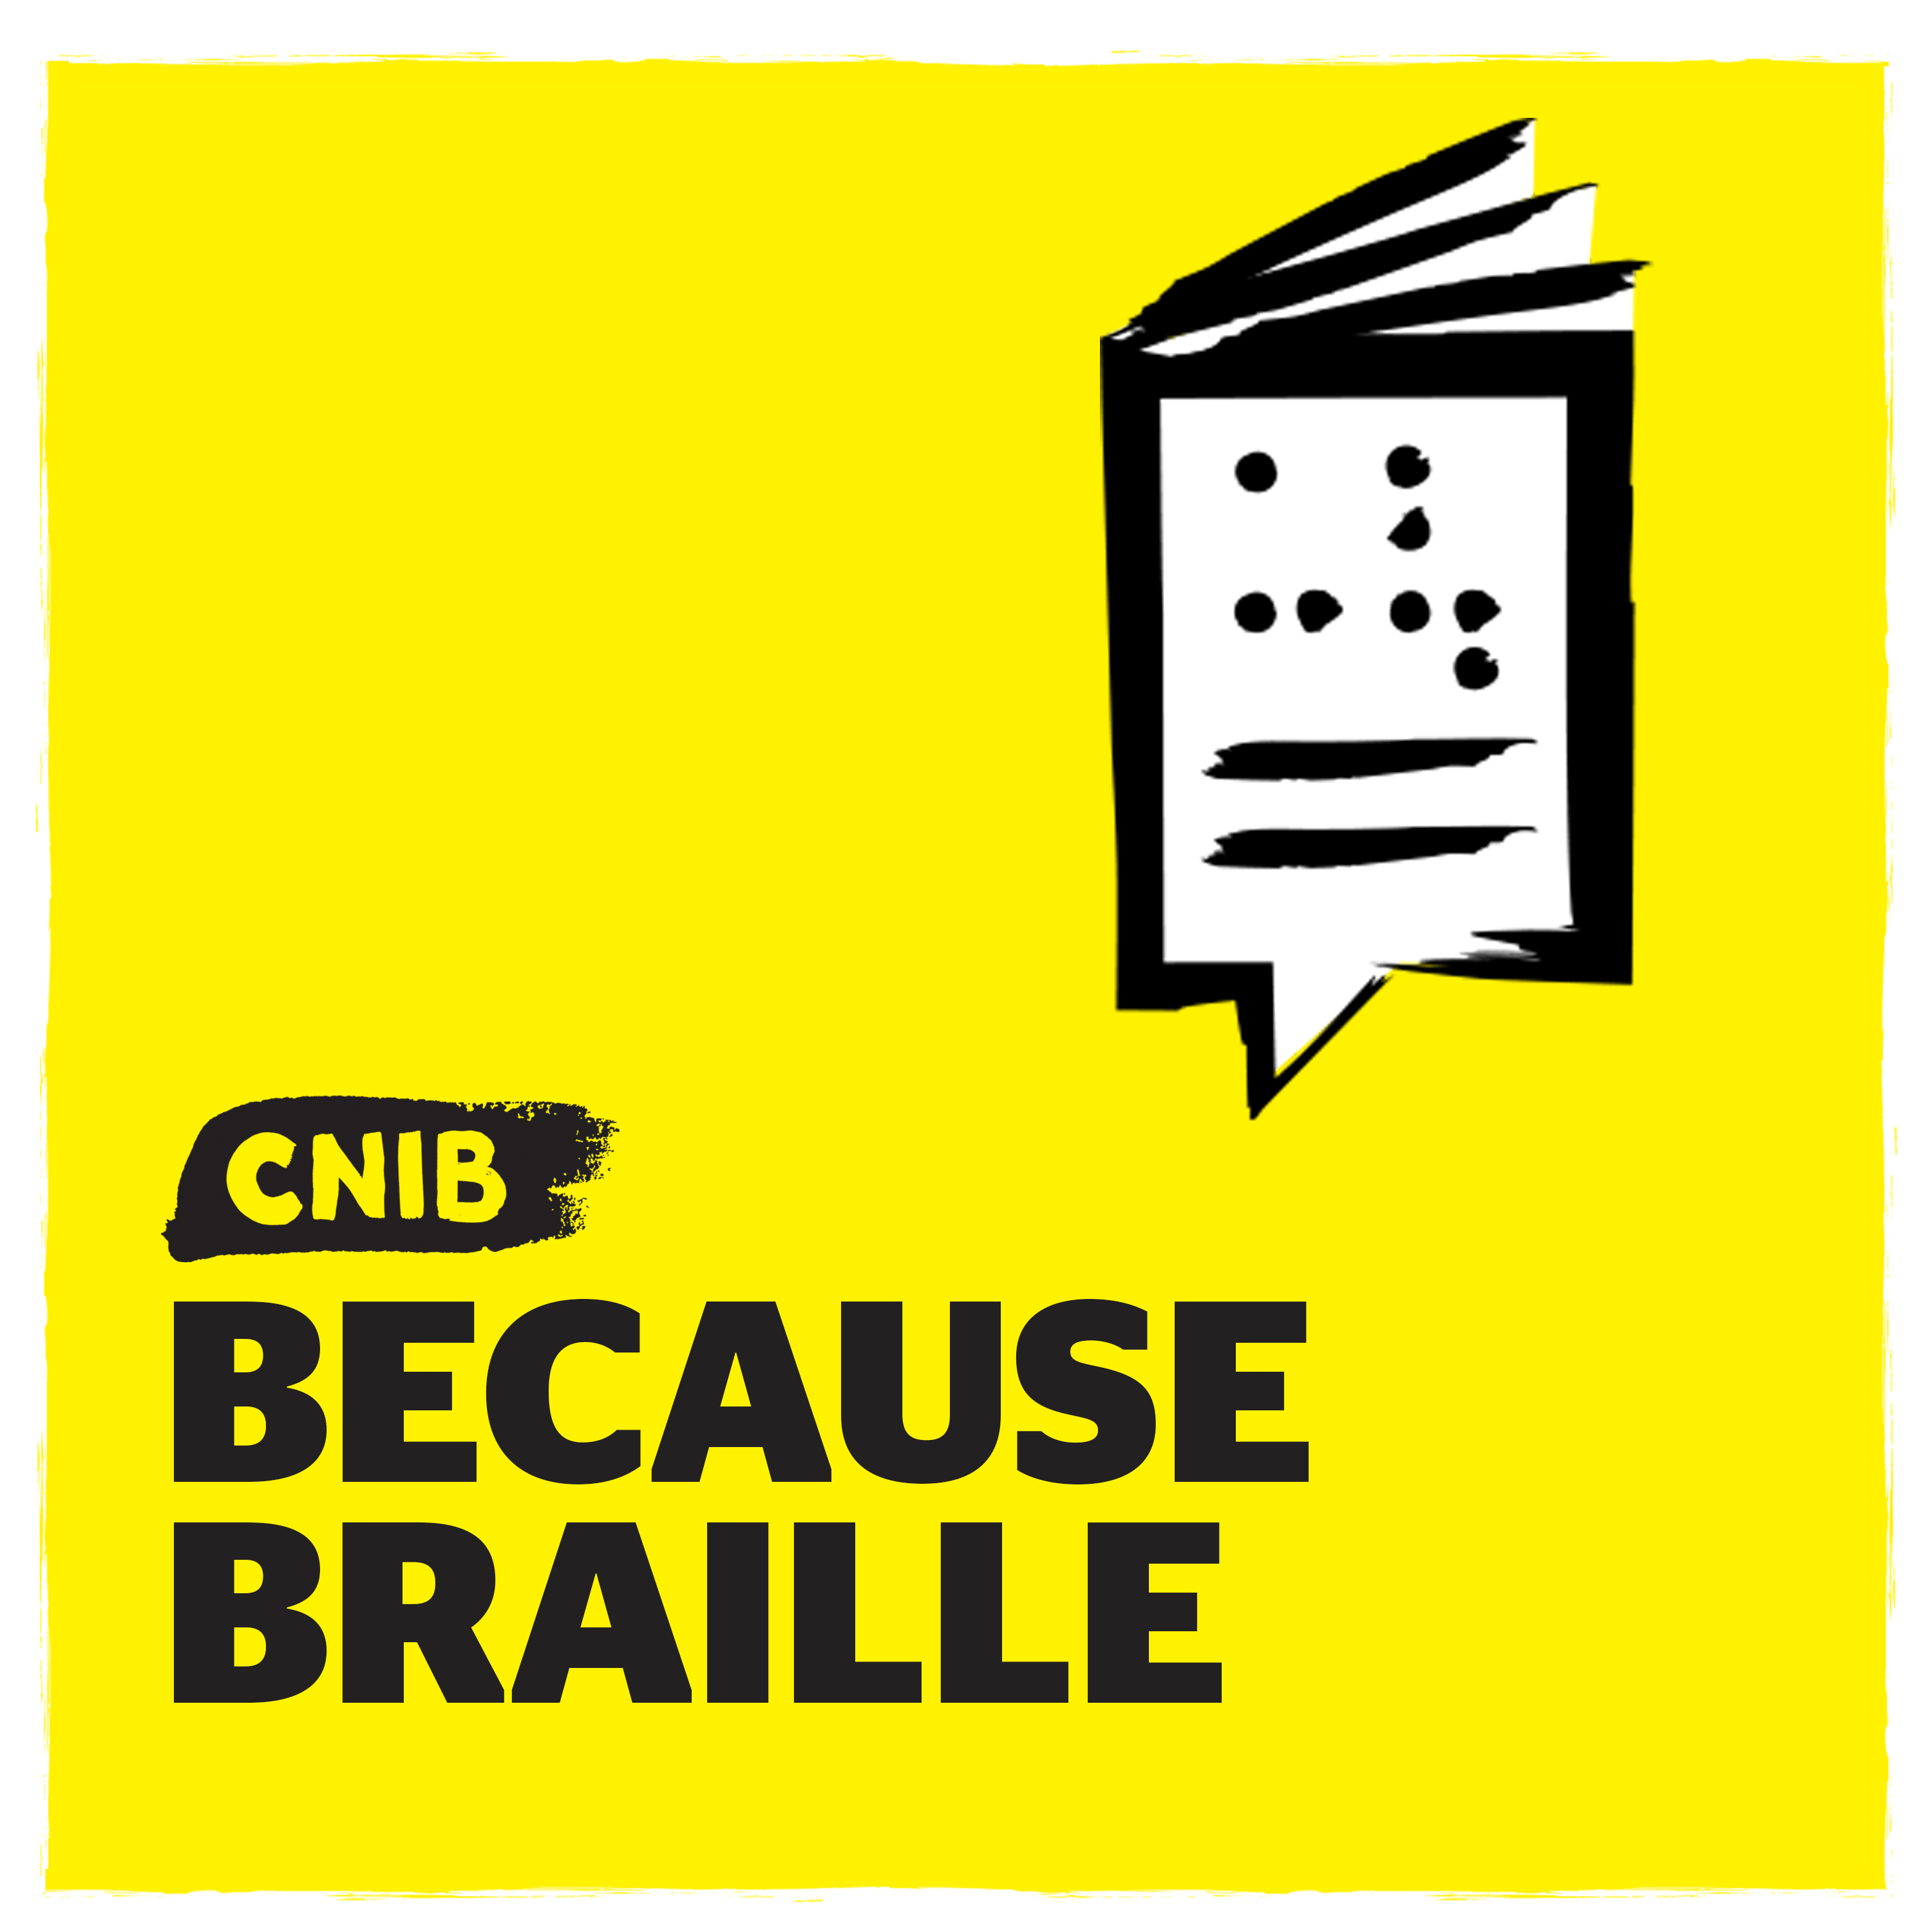 CNIB Because Braille logo. An illustration of a braille book with a speech bubble icon on yellow.